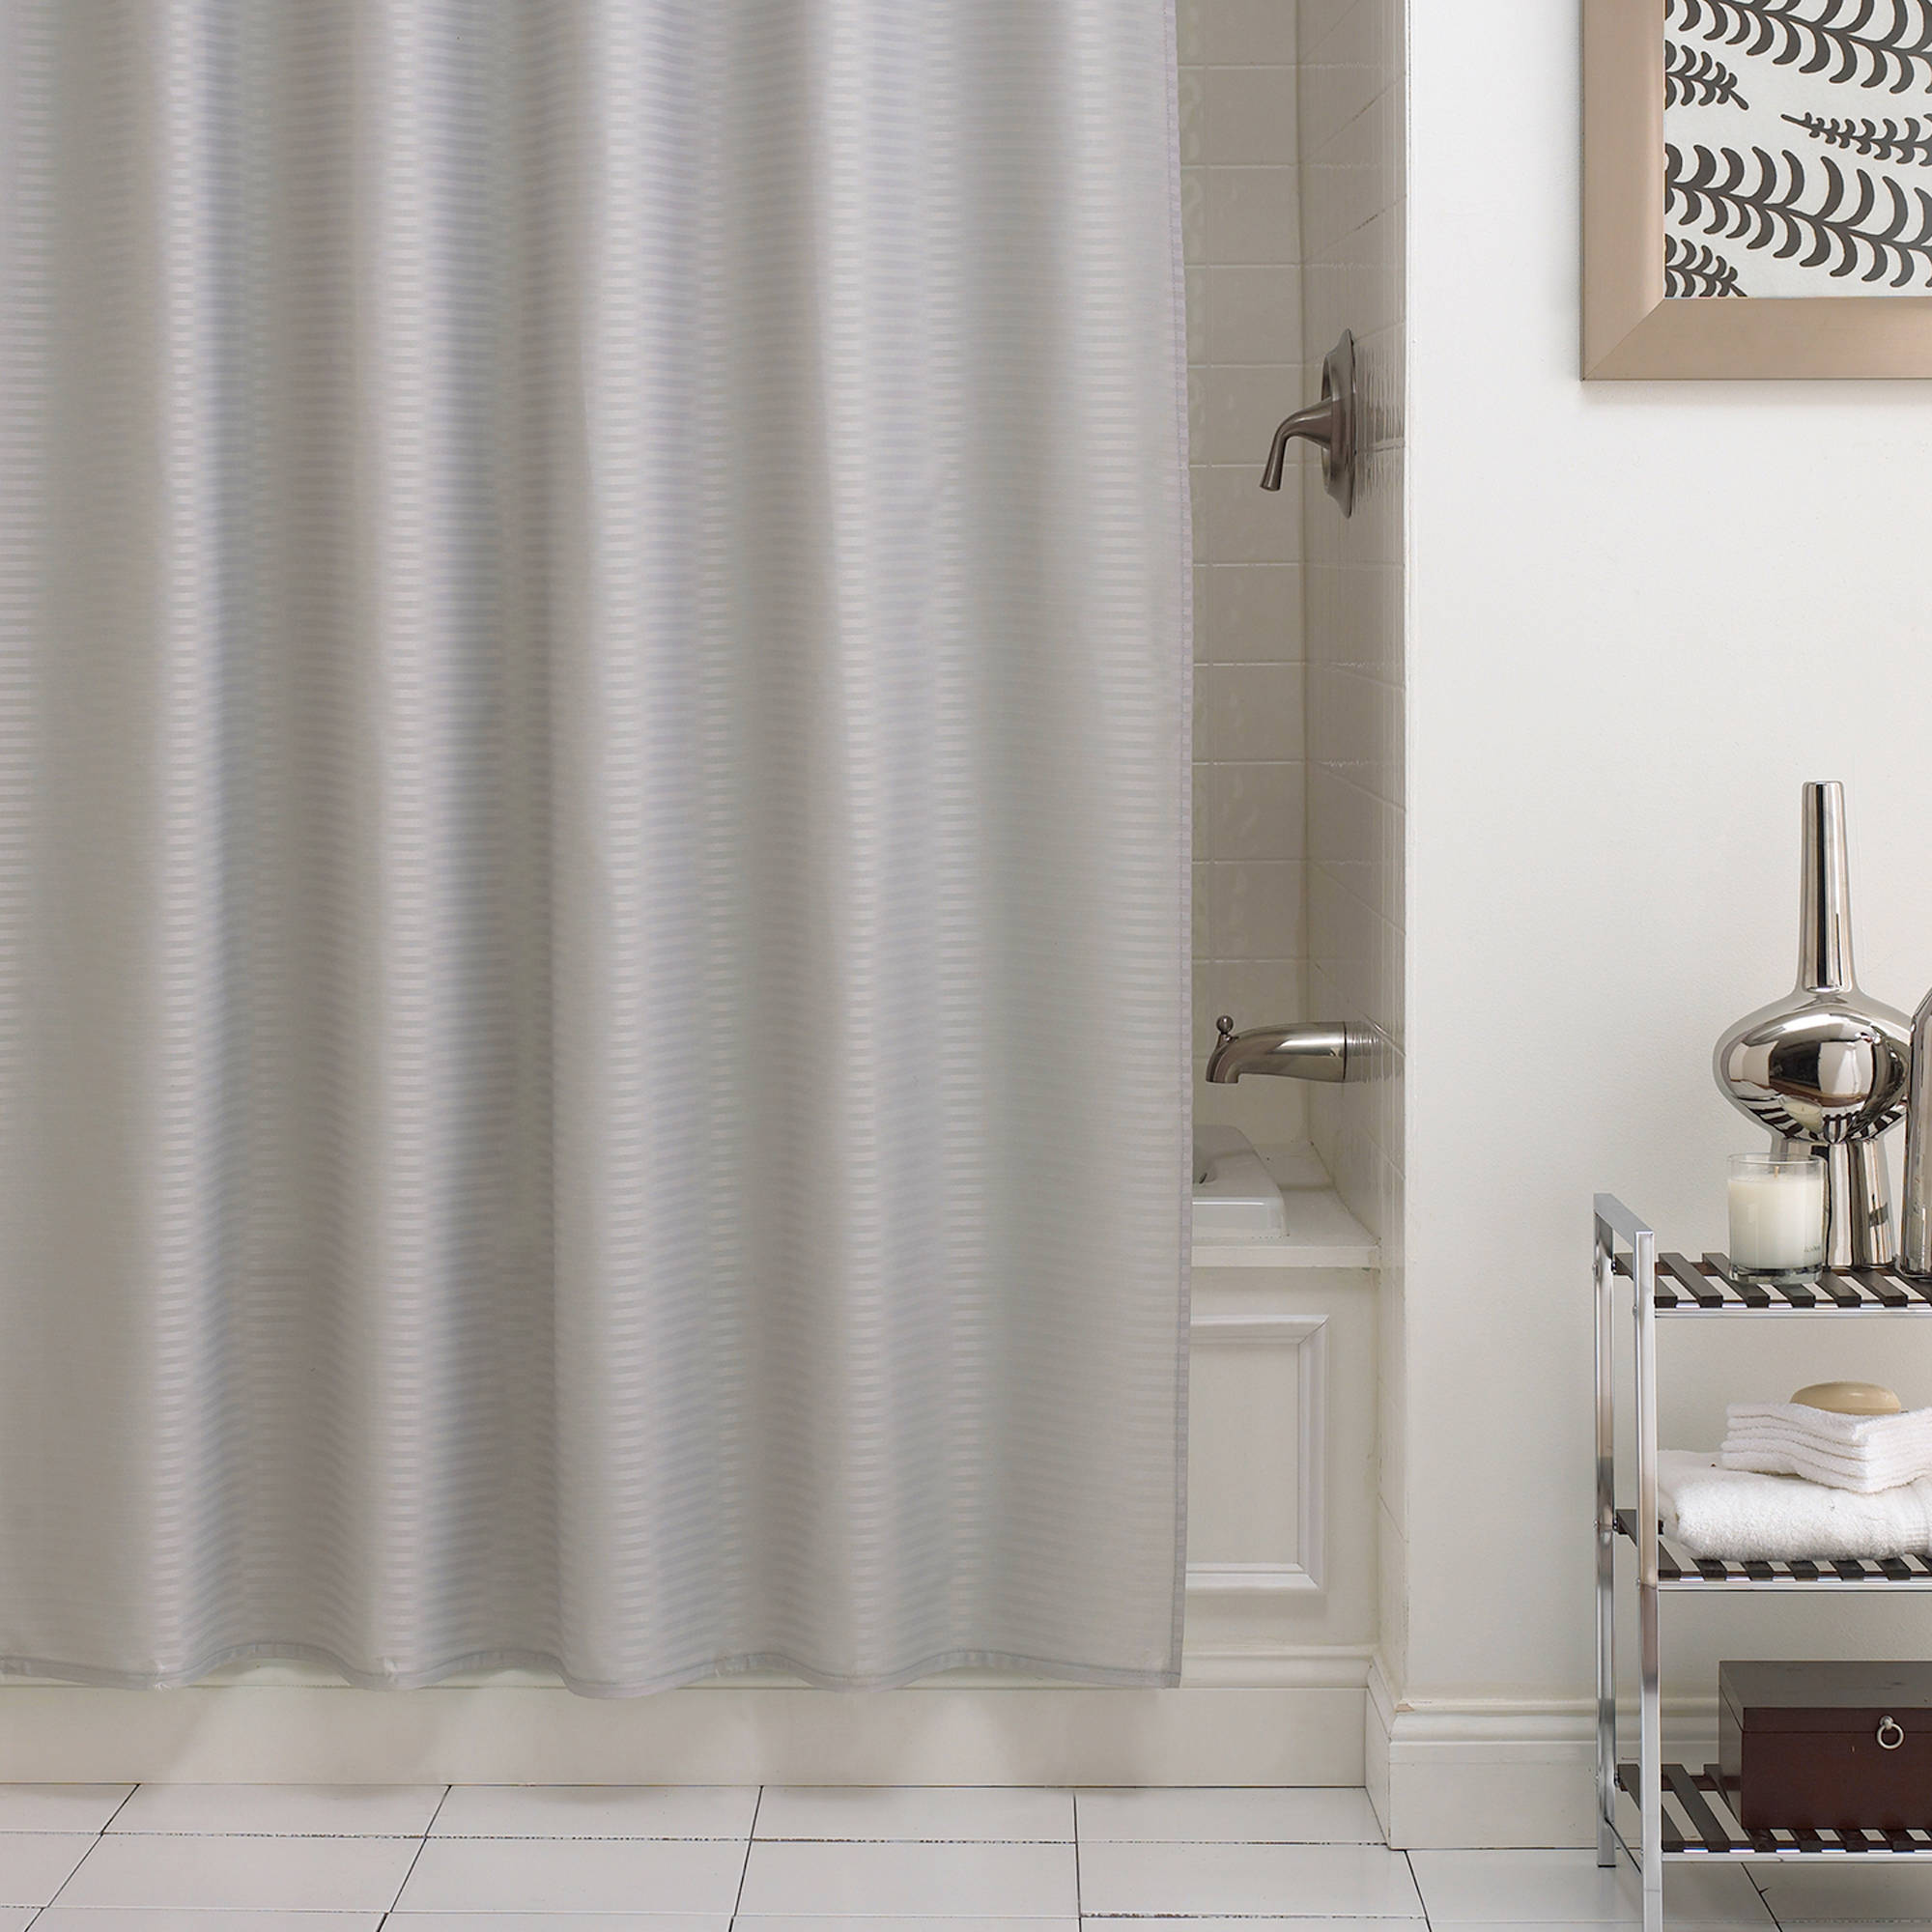 Excell Pure Fabric Horizontal Stripe Shower Curtain Liner Walmart Com